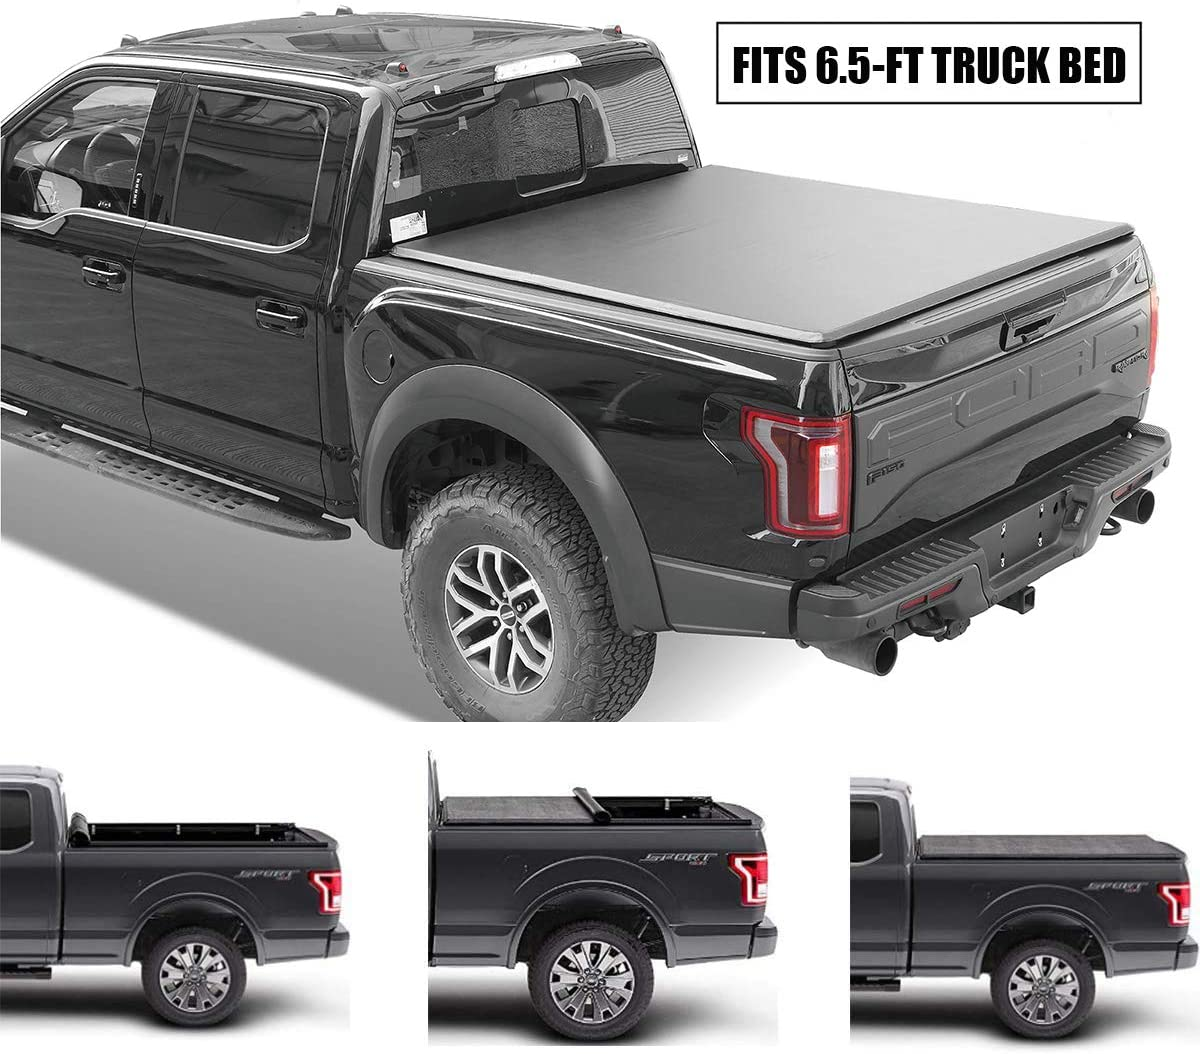 Gevog Soft Roll-Up Truck Bed Tonneau Cover Assembly for 2015-2020 Ford F150 6.5 (78.8-78.9) Styleside Bed